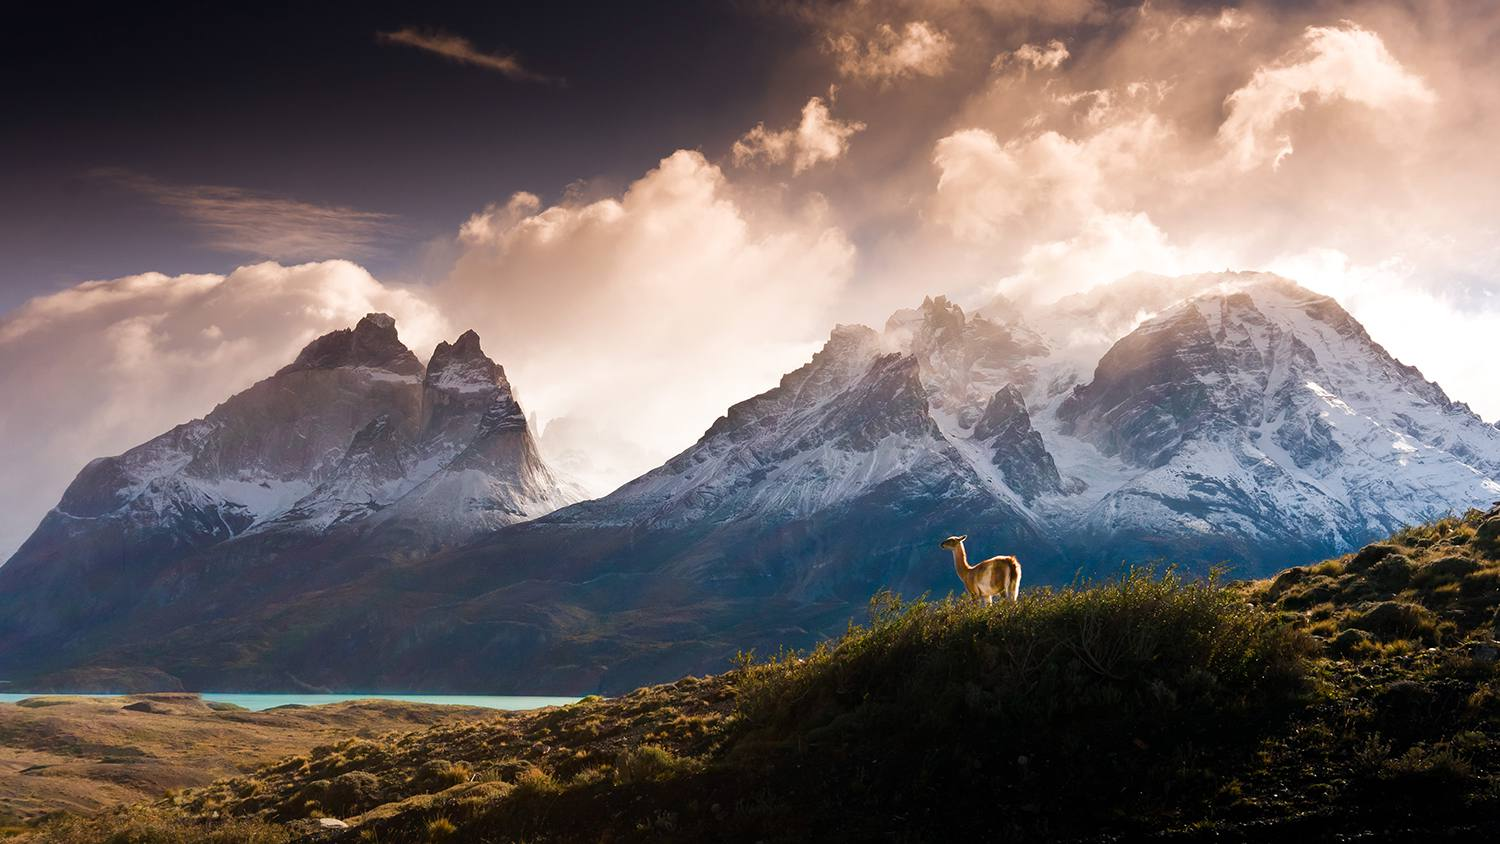 Cinematic photograph of Cuernos del Paine, Patagonia, Chile.